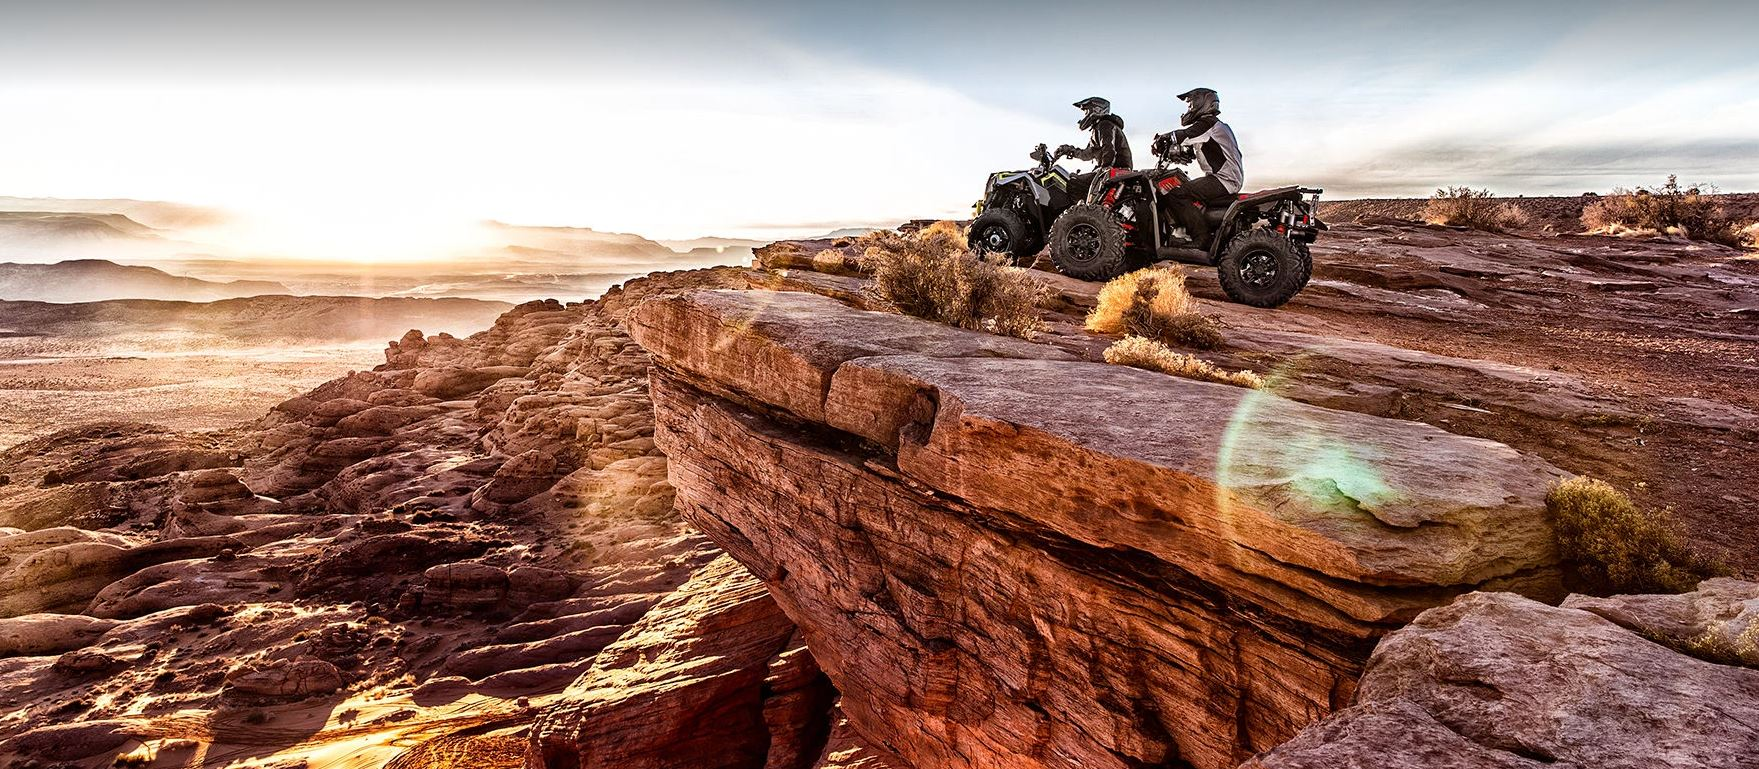 two Polaris Scrambler XP 10000 S ATV riders parked at the edge of a cliff watching the sunrise